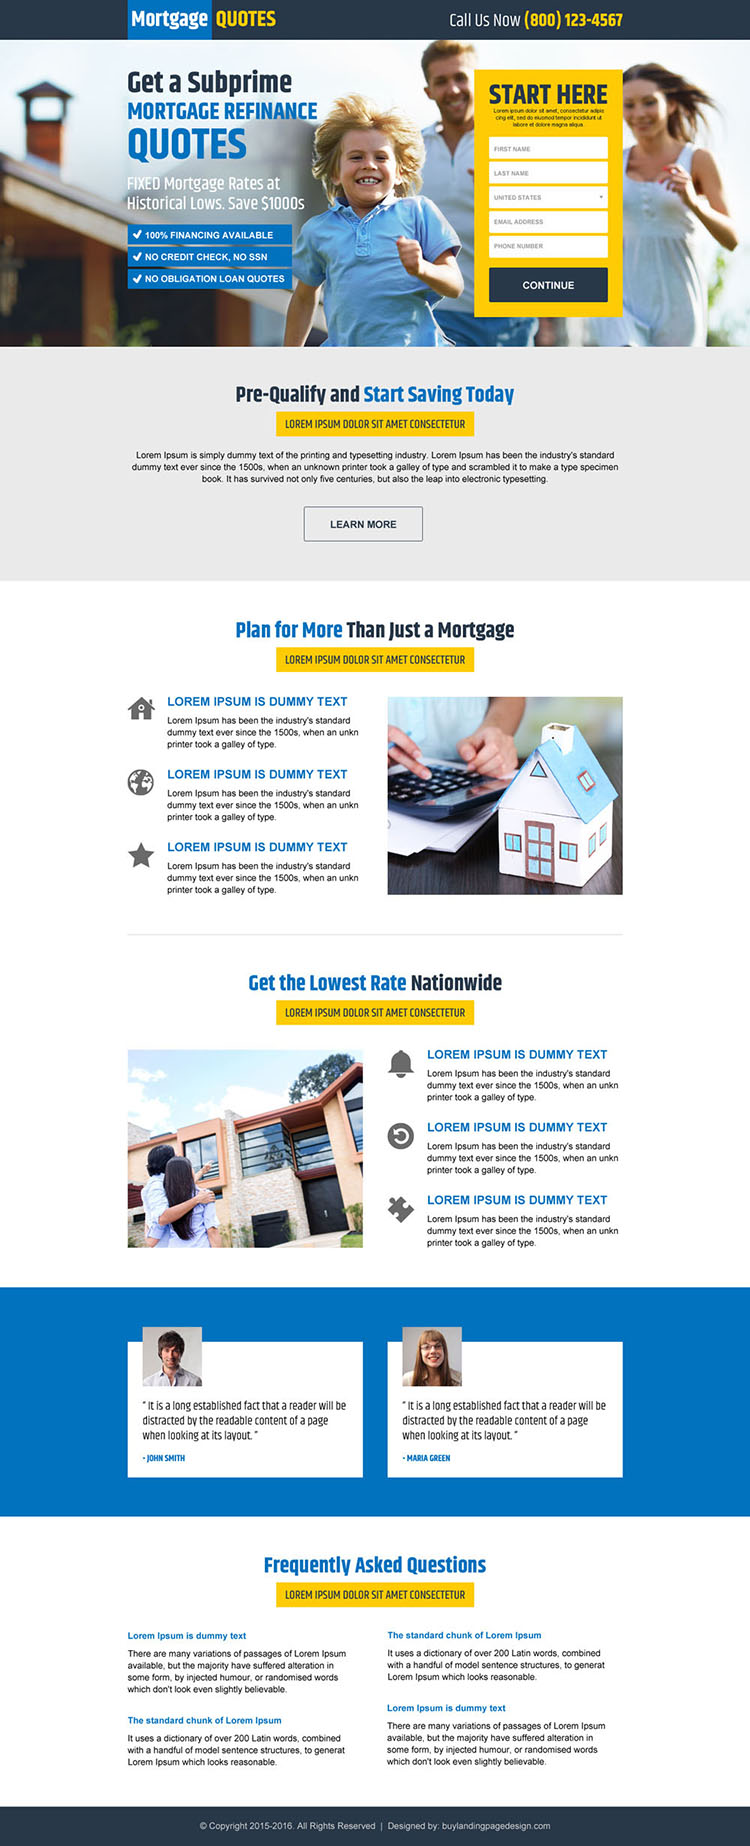 mortgage refinance quote lead capture landing page design